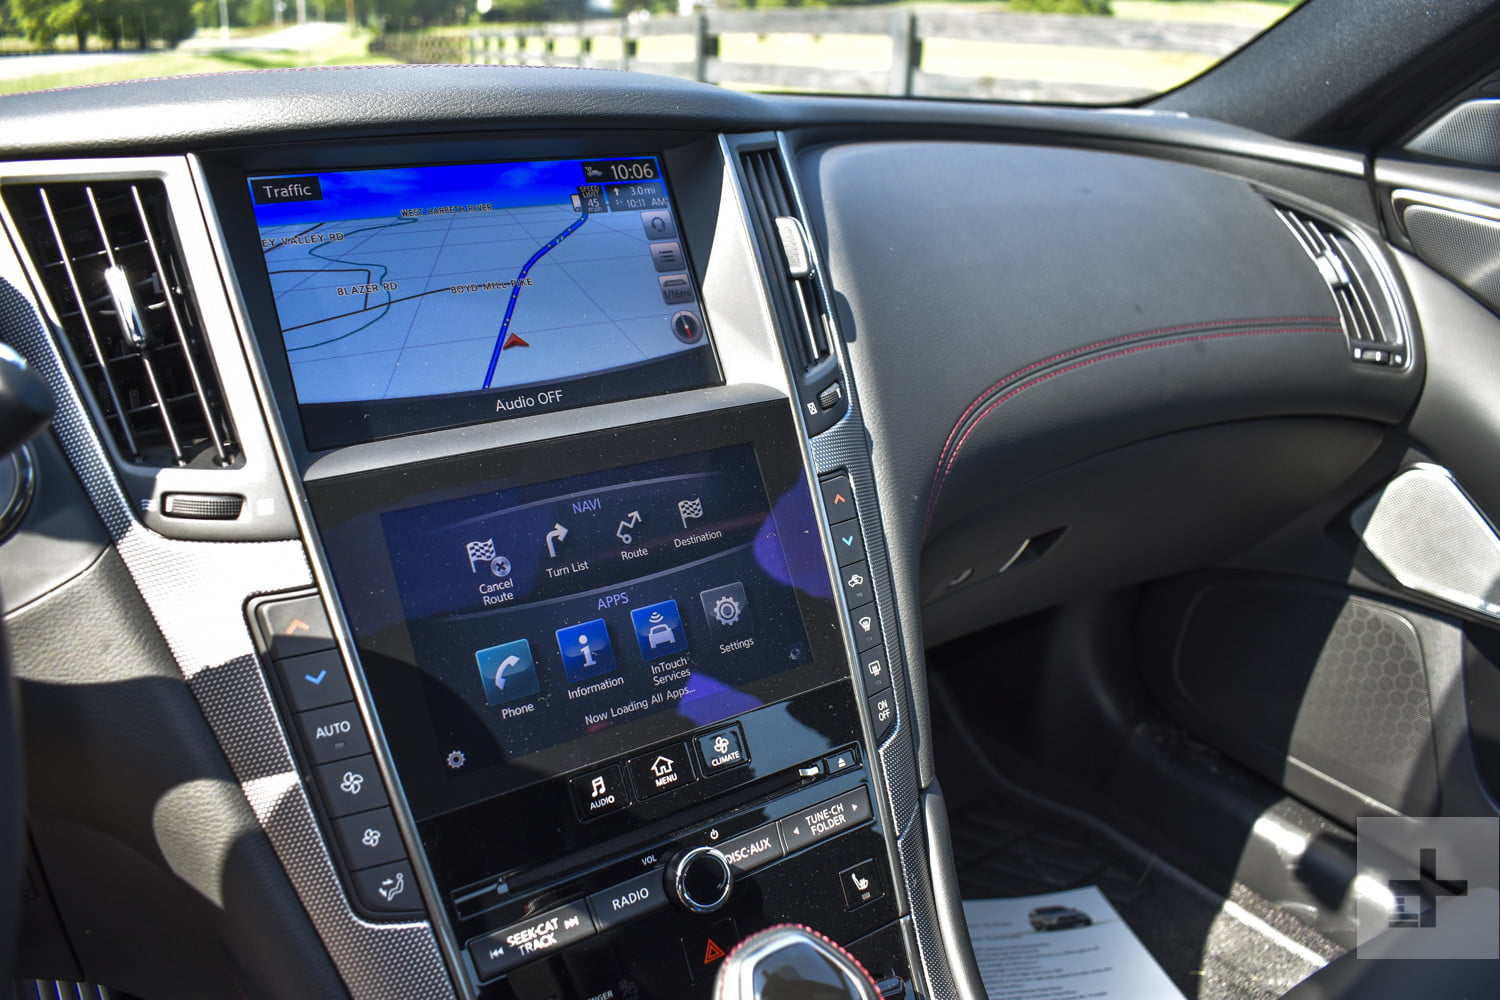 2018 Infiniti Q50 Infotainment And Dashboard Shot From The Driver S Side